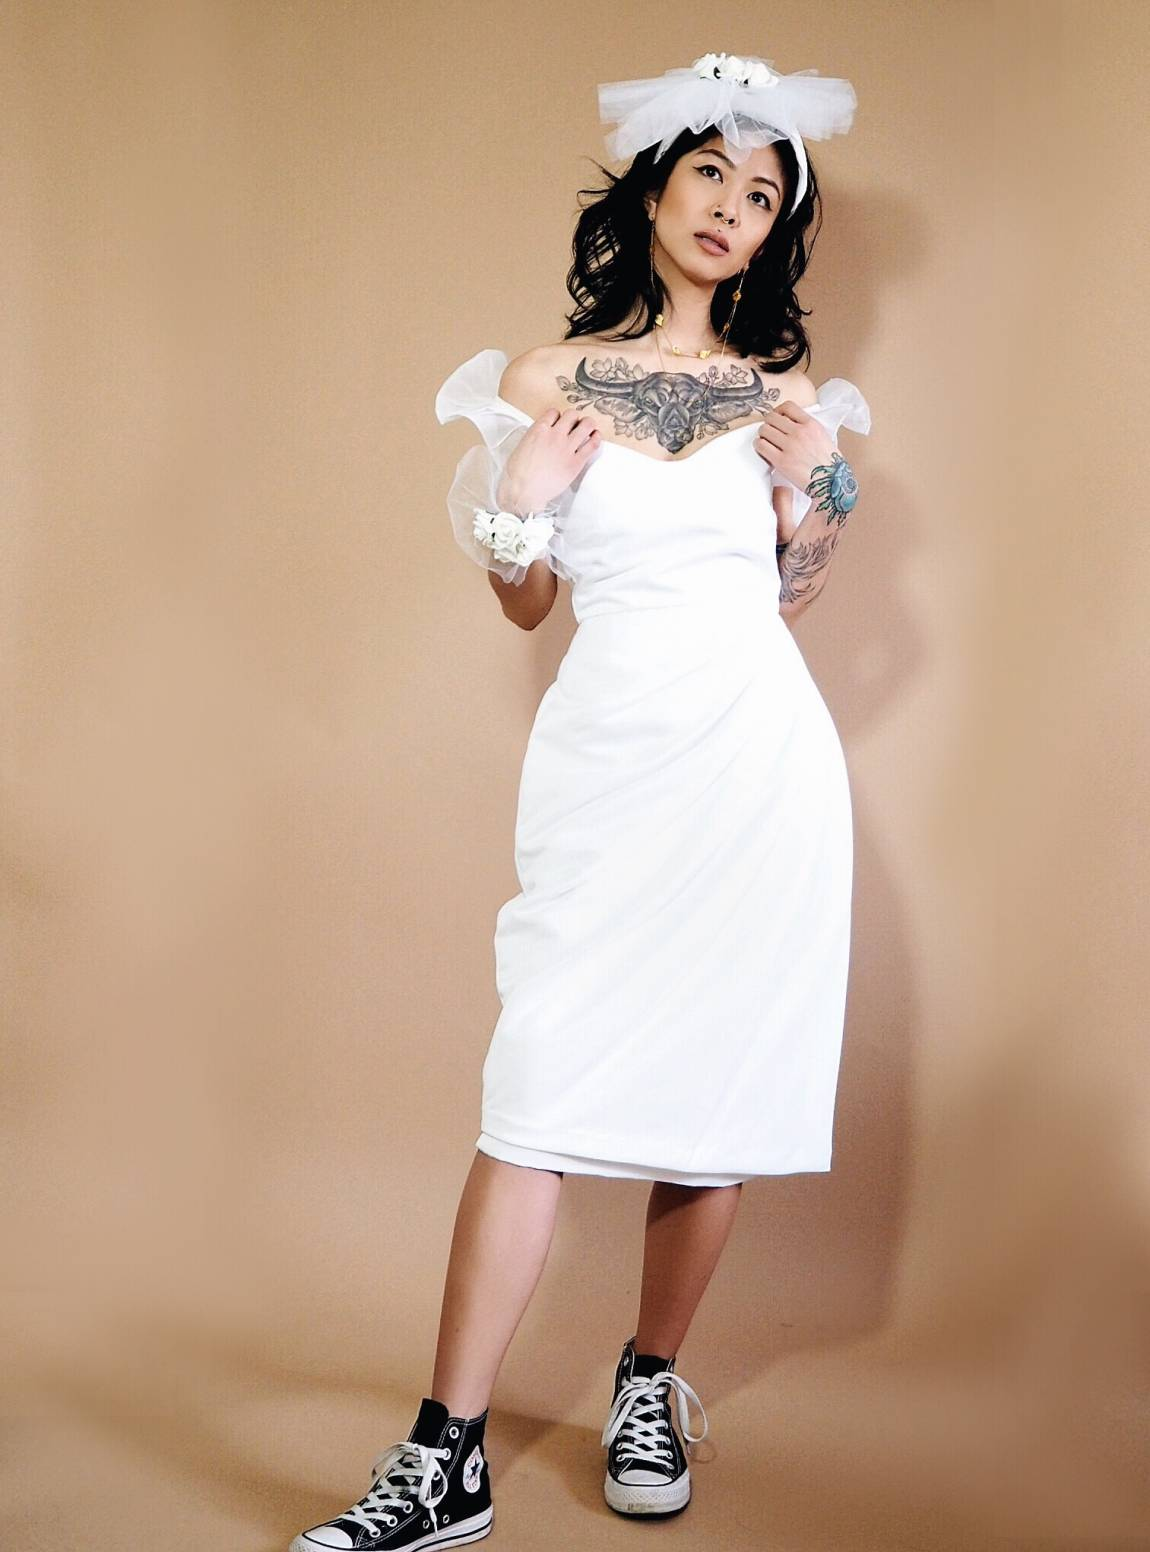 VINTA Drape Front Terno, white, styled with corsage, fascinator, and Converse shoes